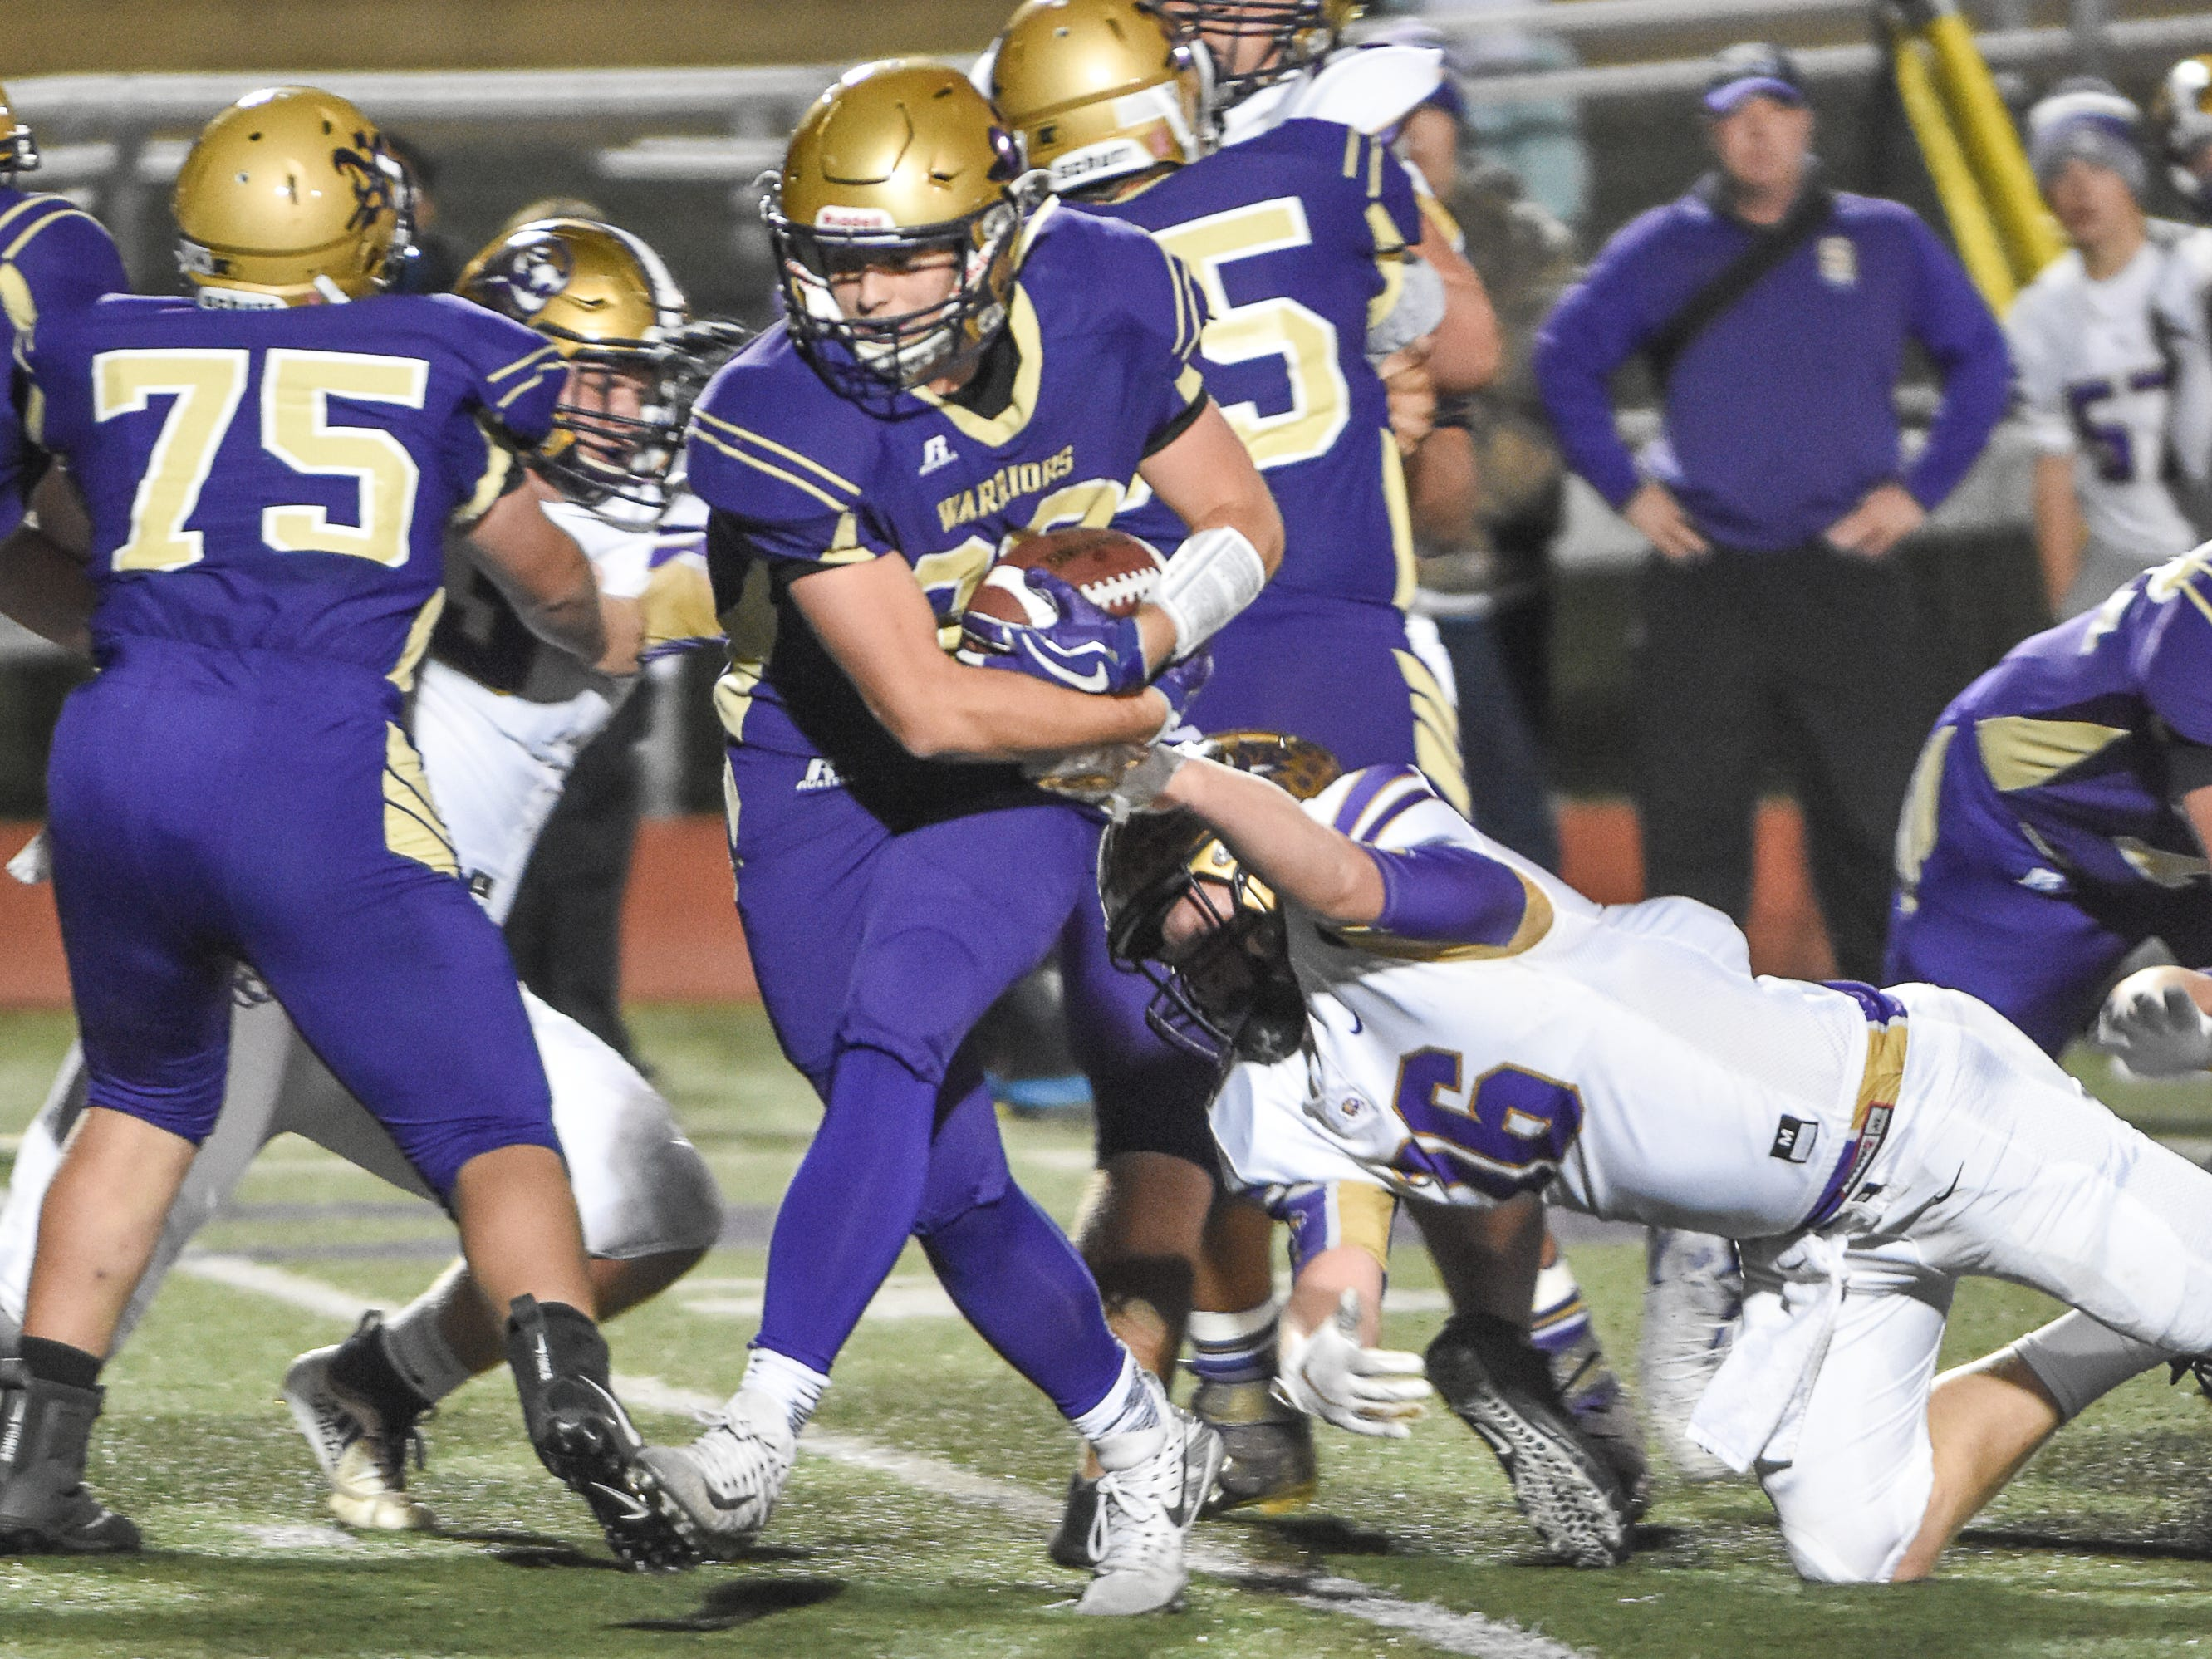 Norwalk's Christian Nicholson shakes off a tackle on his way to a touchdown during a first-round playoff game Friday in Norwalk. Spencer ended Norwalk's season Oct. 26, 2018, with a 24-20 win in the first round of the Class 3A playoffs.